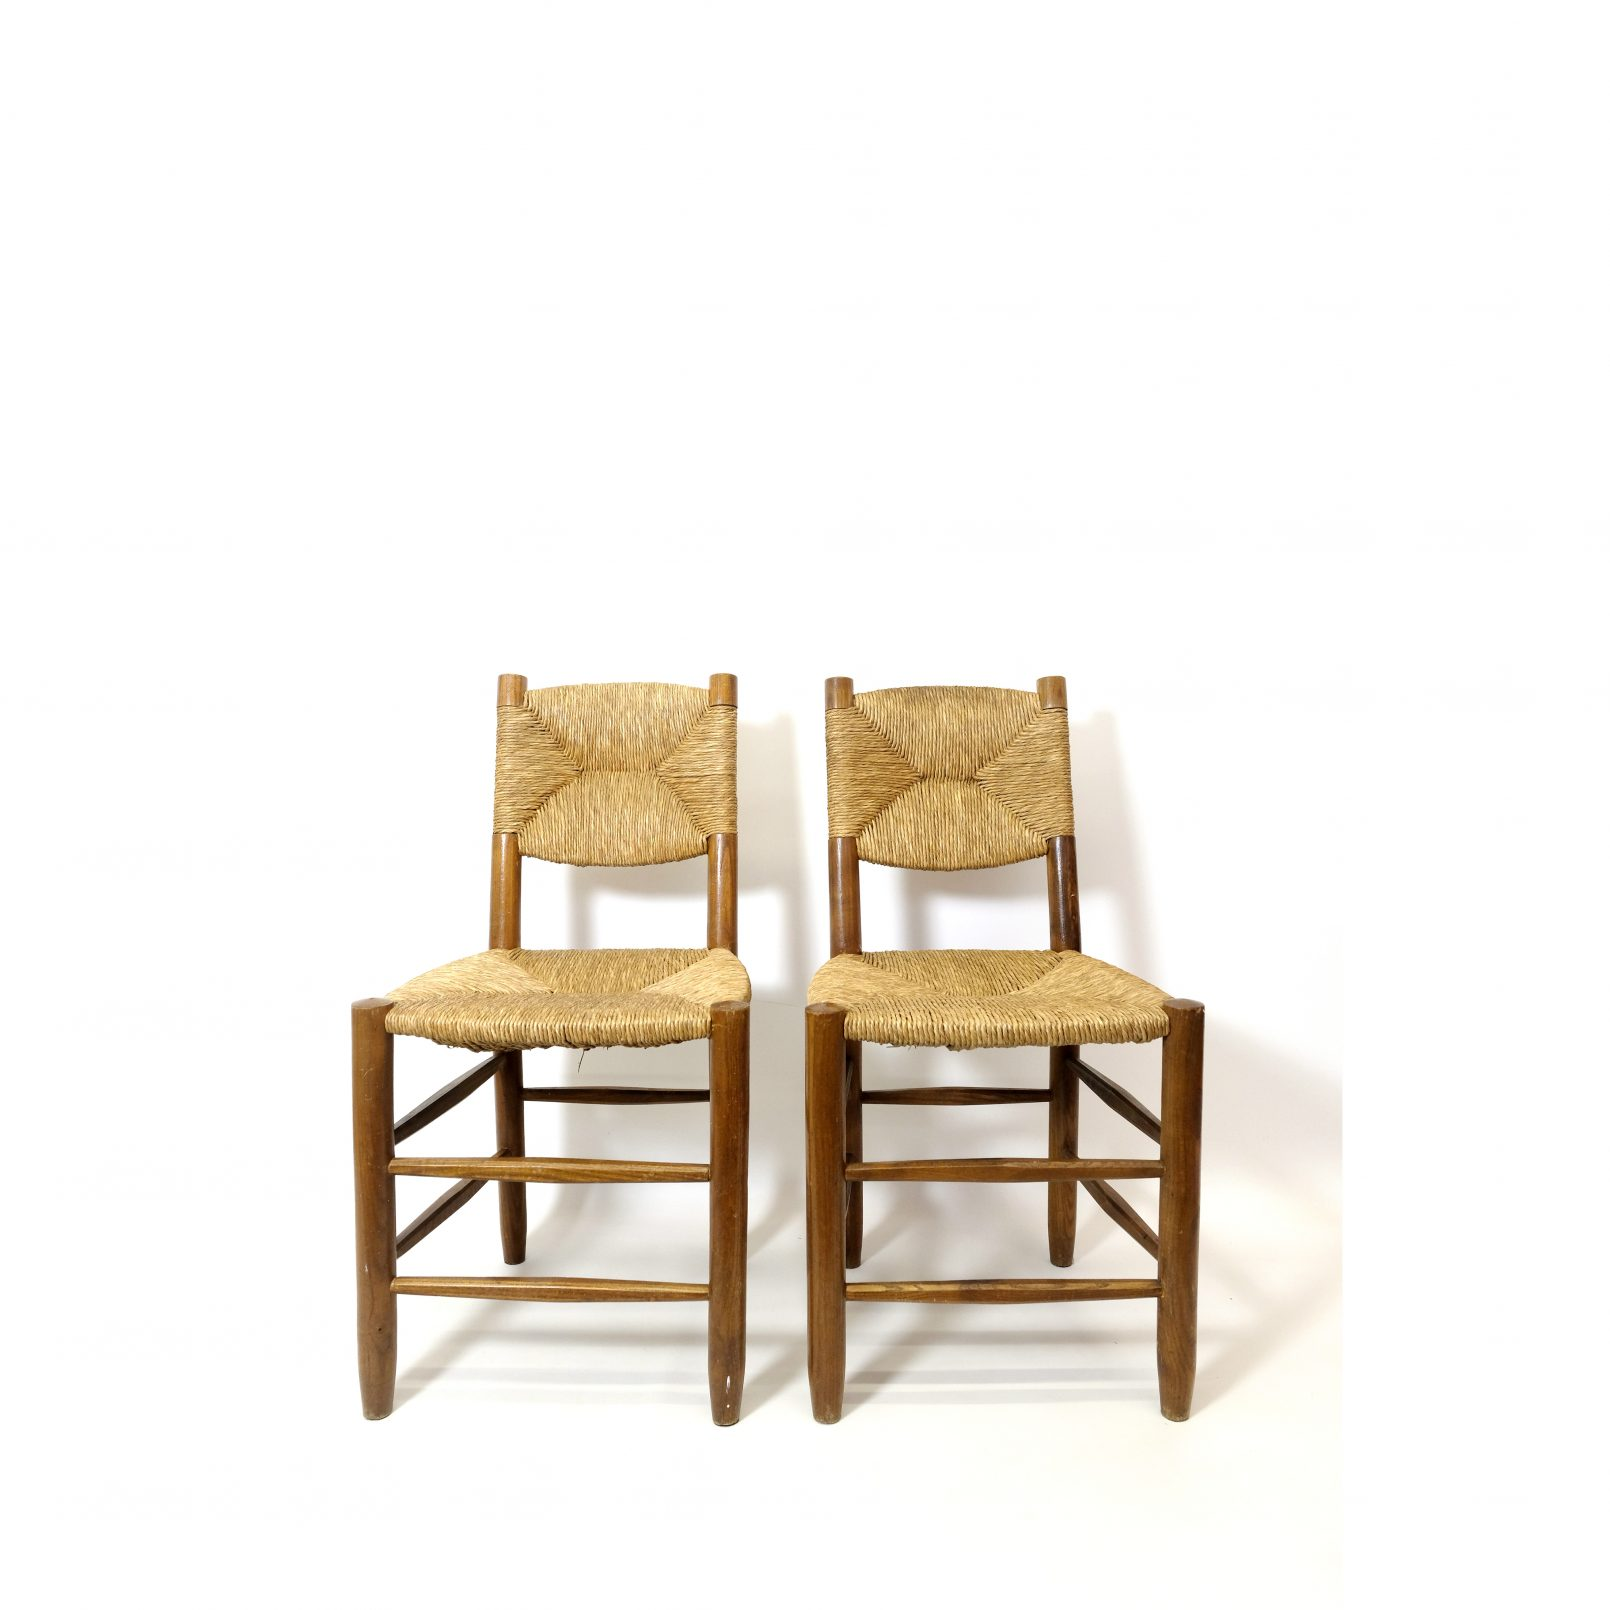 Charlotte Perriand, a pair of chairs n°19, design of 1939.